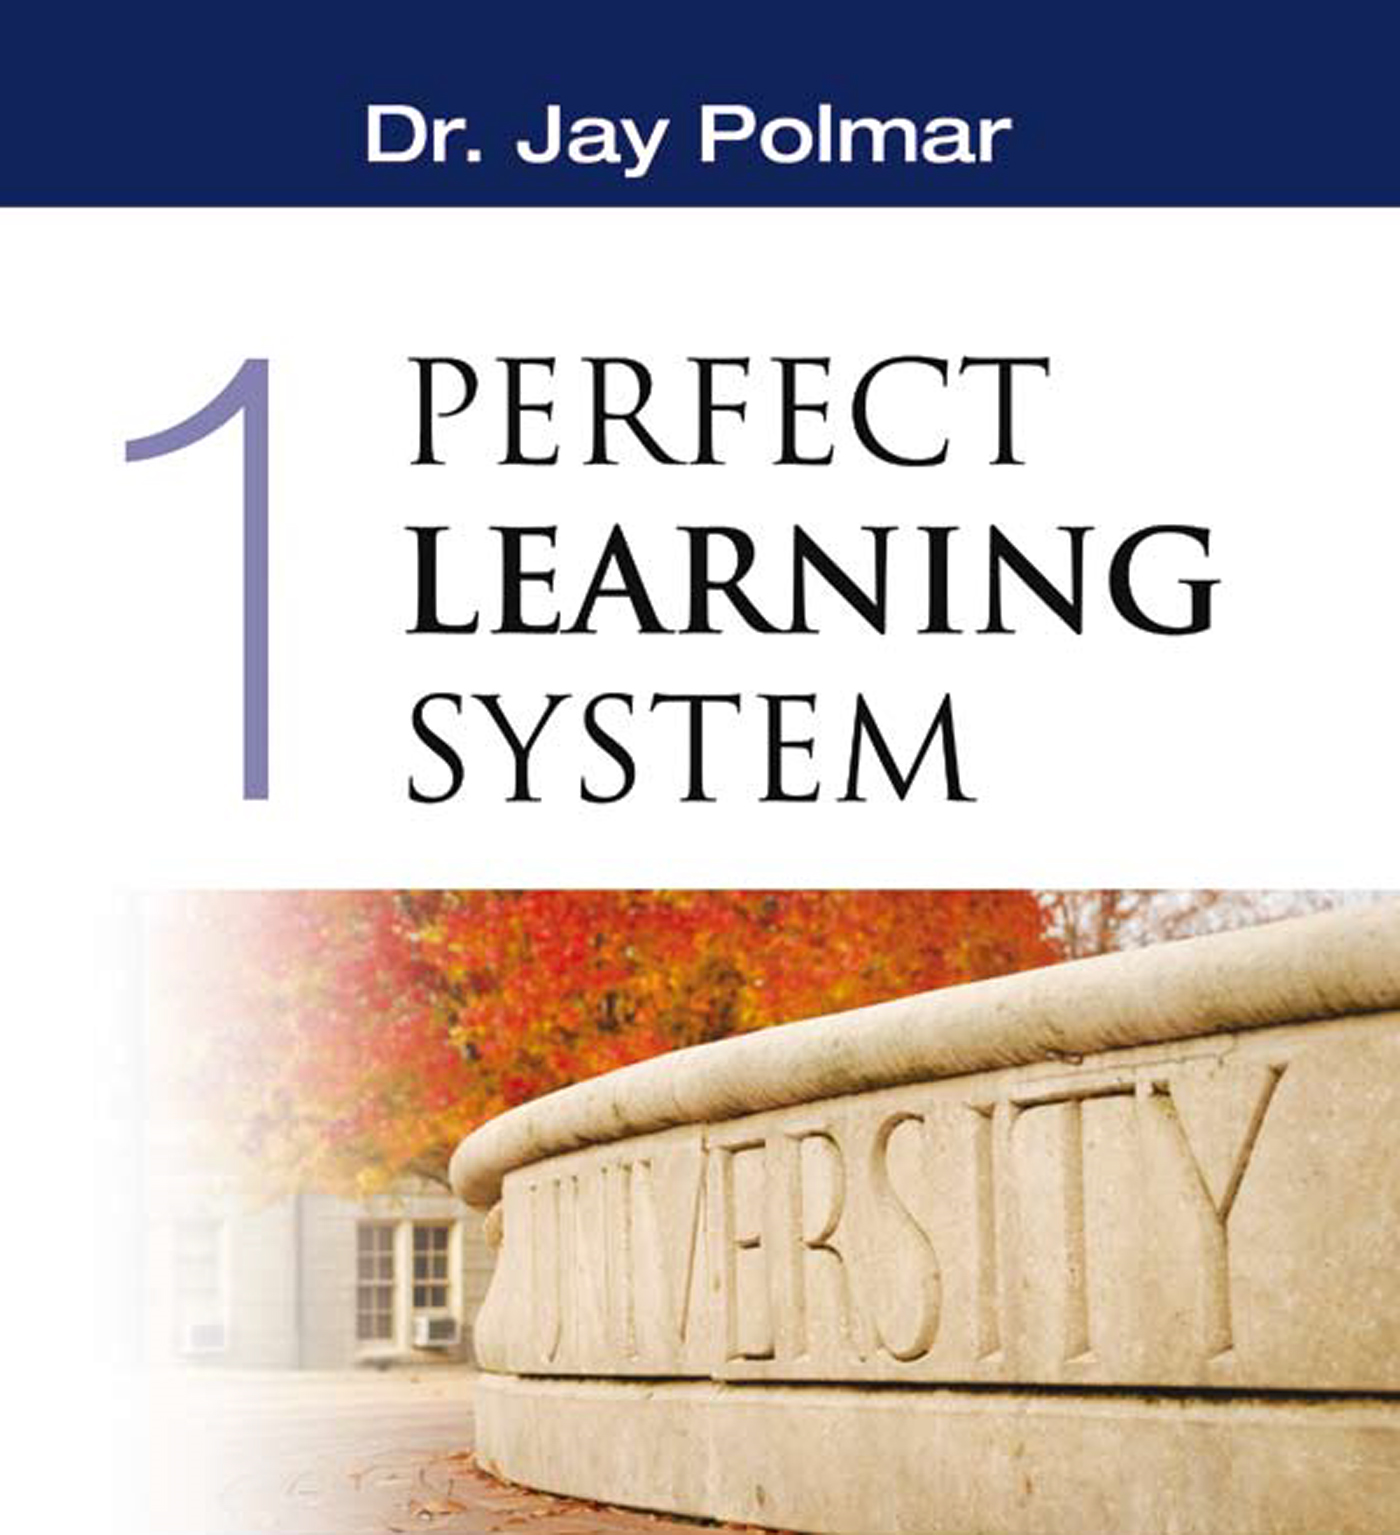 Perfect Learning System By: Dr Jay Polmar